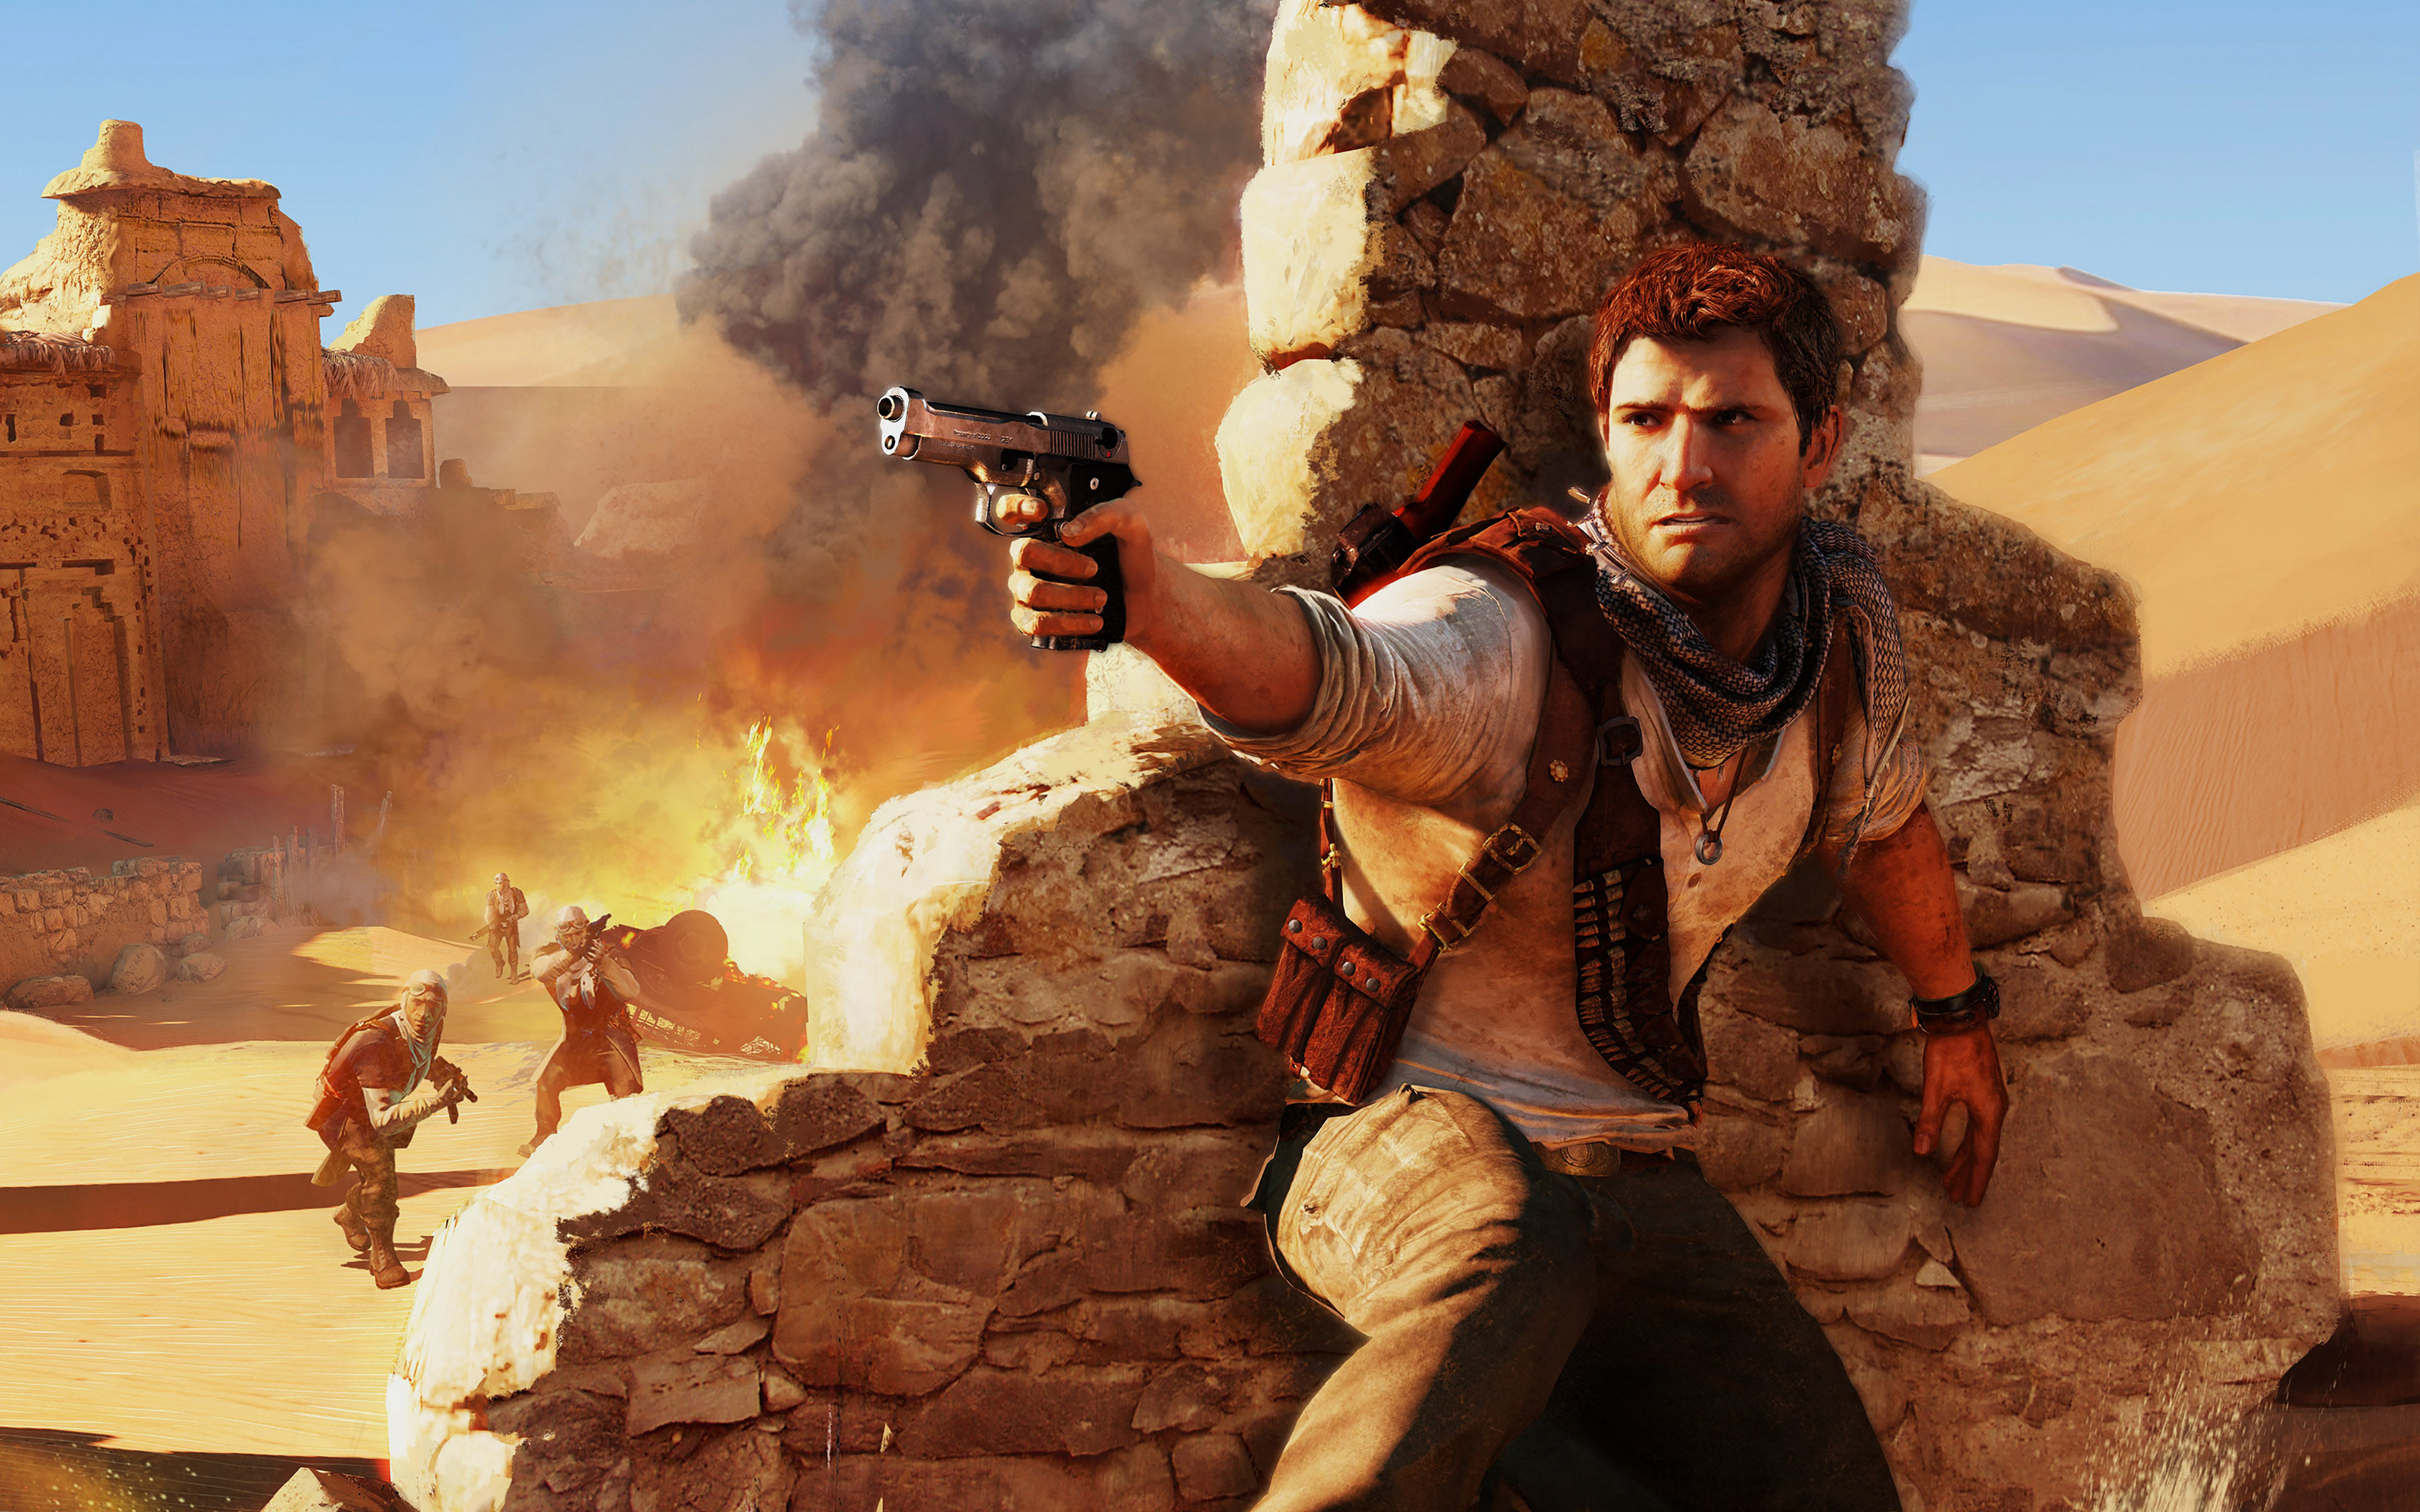 Hd Wallpaper Yosemite Fire Fall Ah09 Drake Under Fire Uncharted Game Papers Co